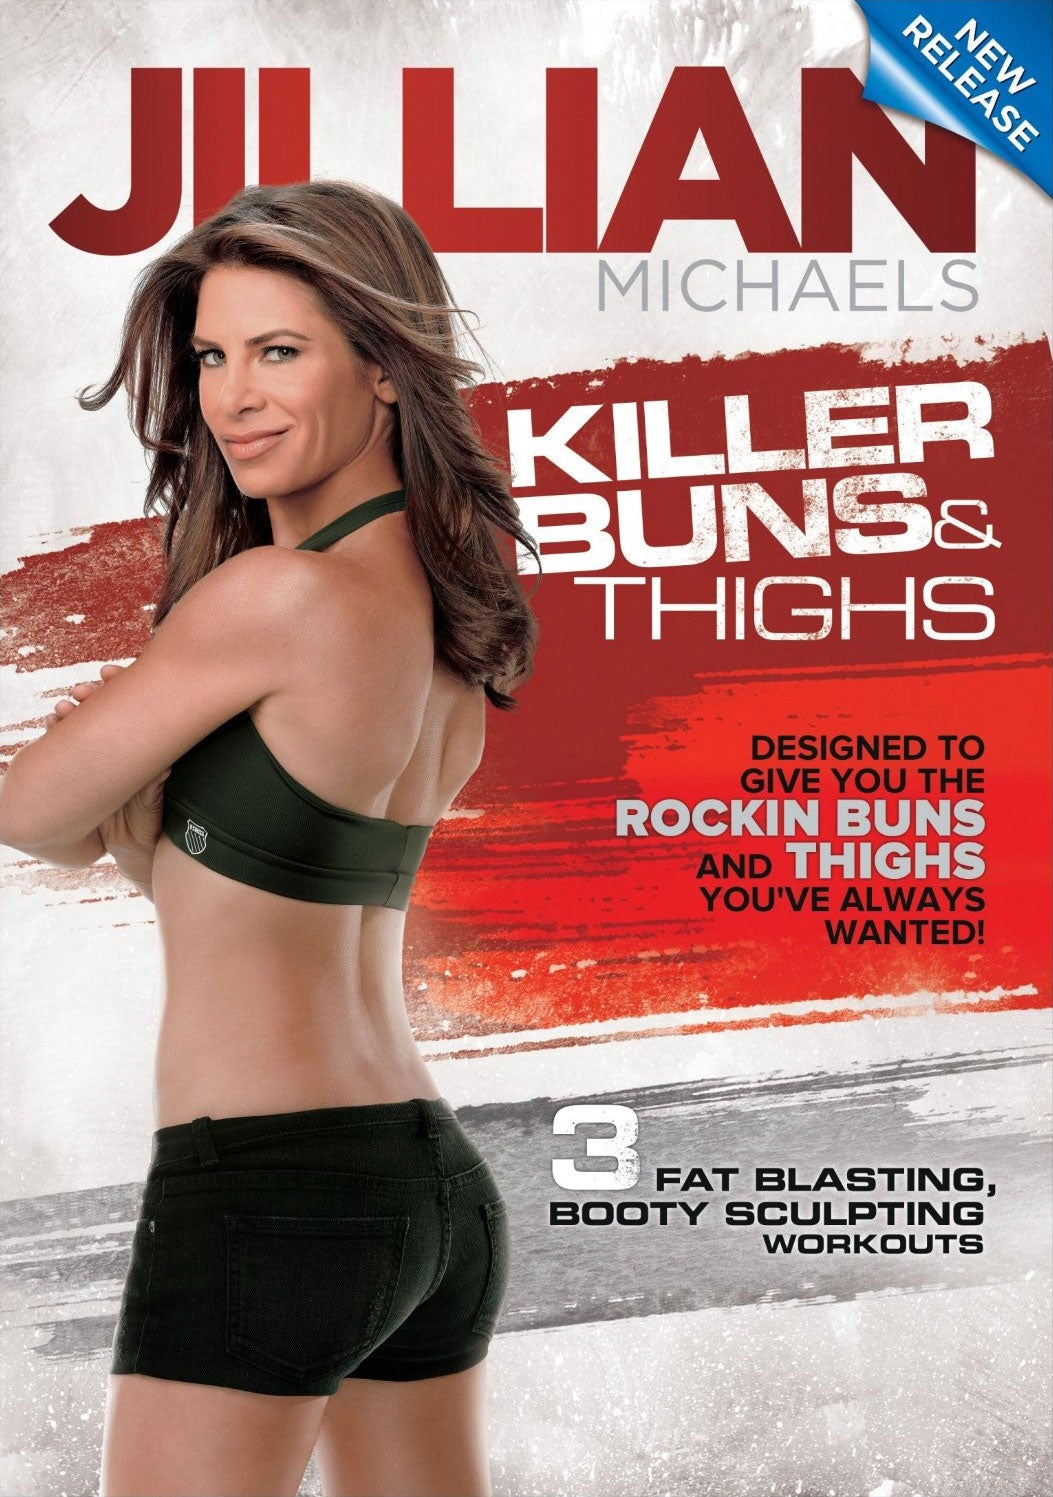 Jillian Michaels Killer Buns &amp; Thighs (DVD)